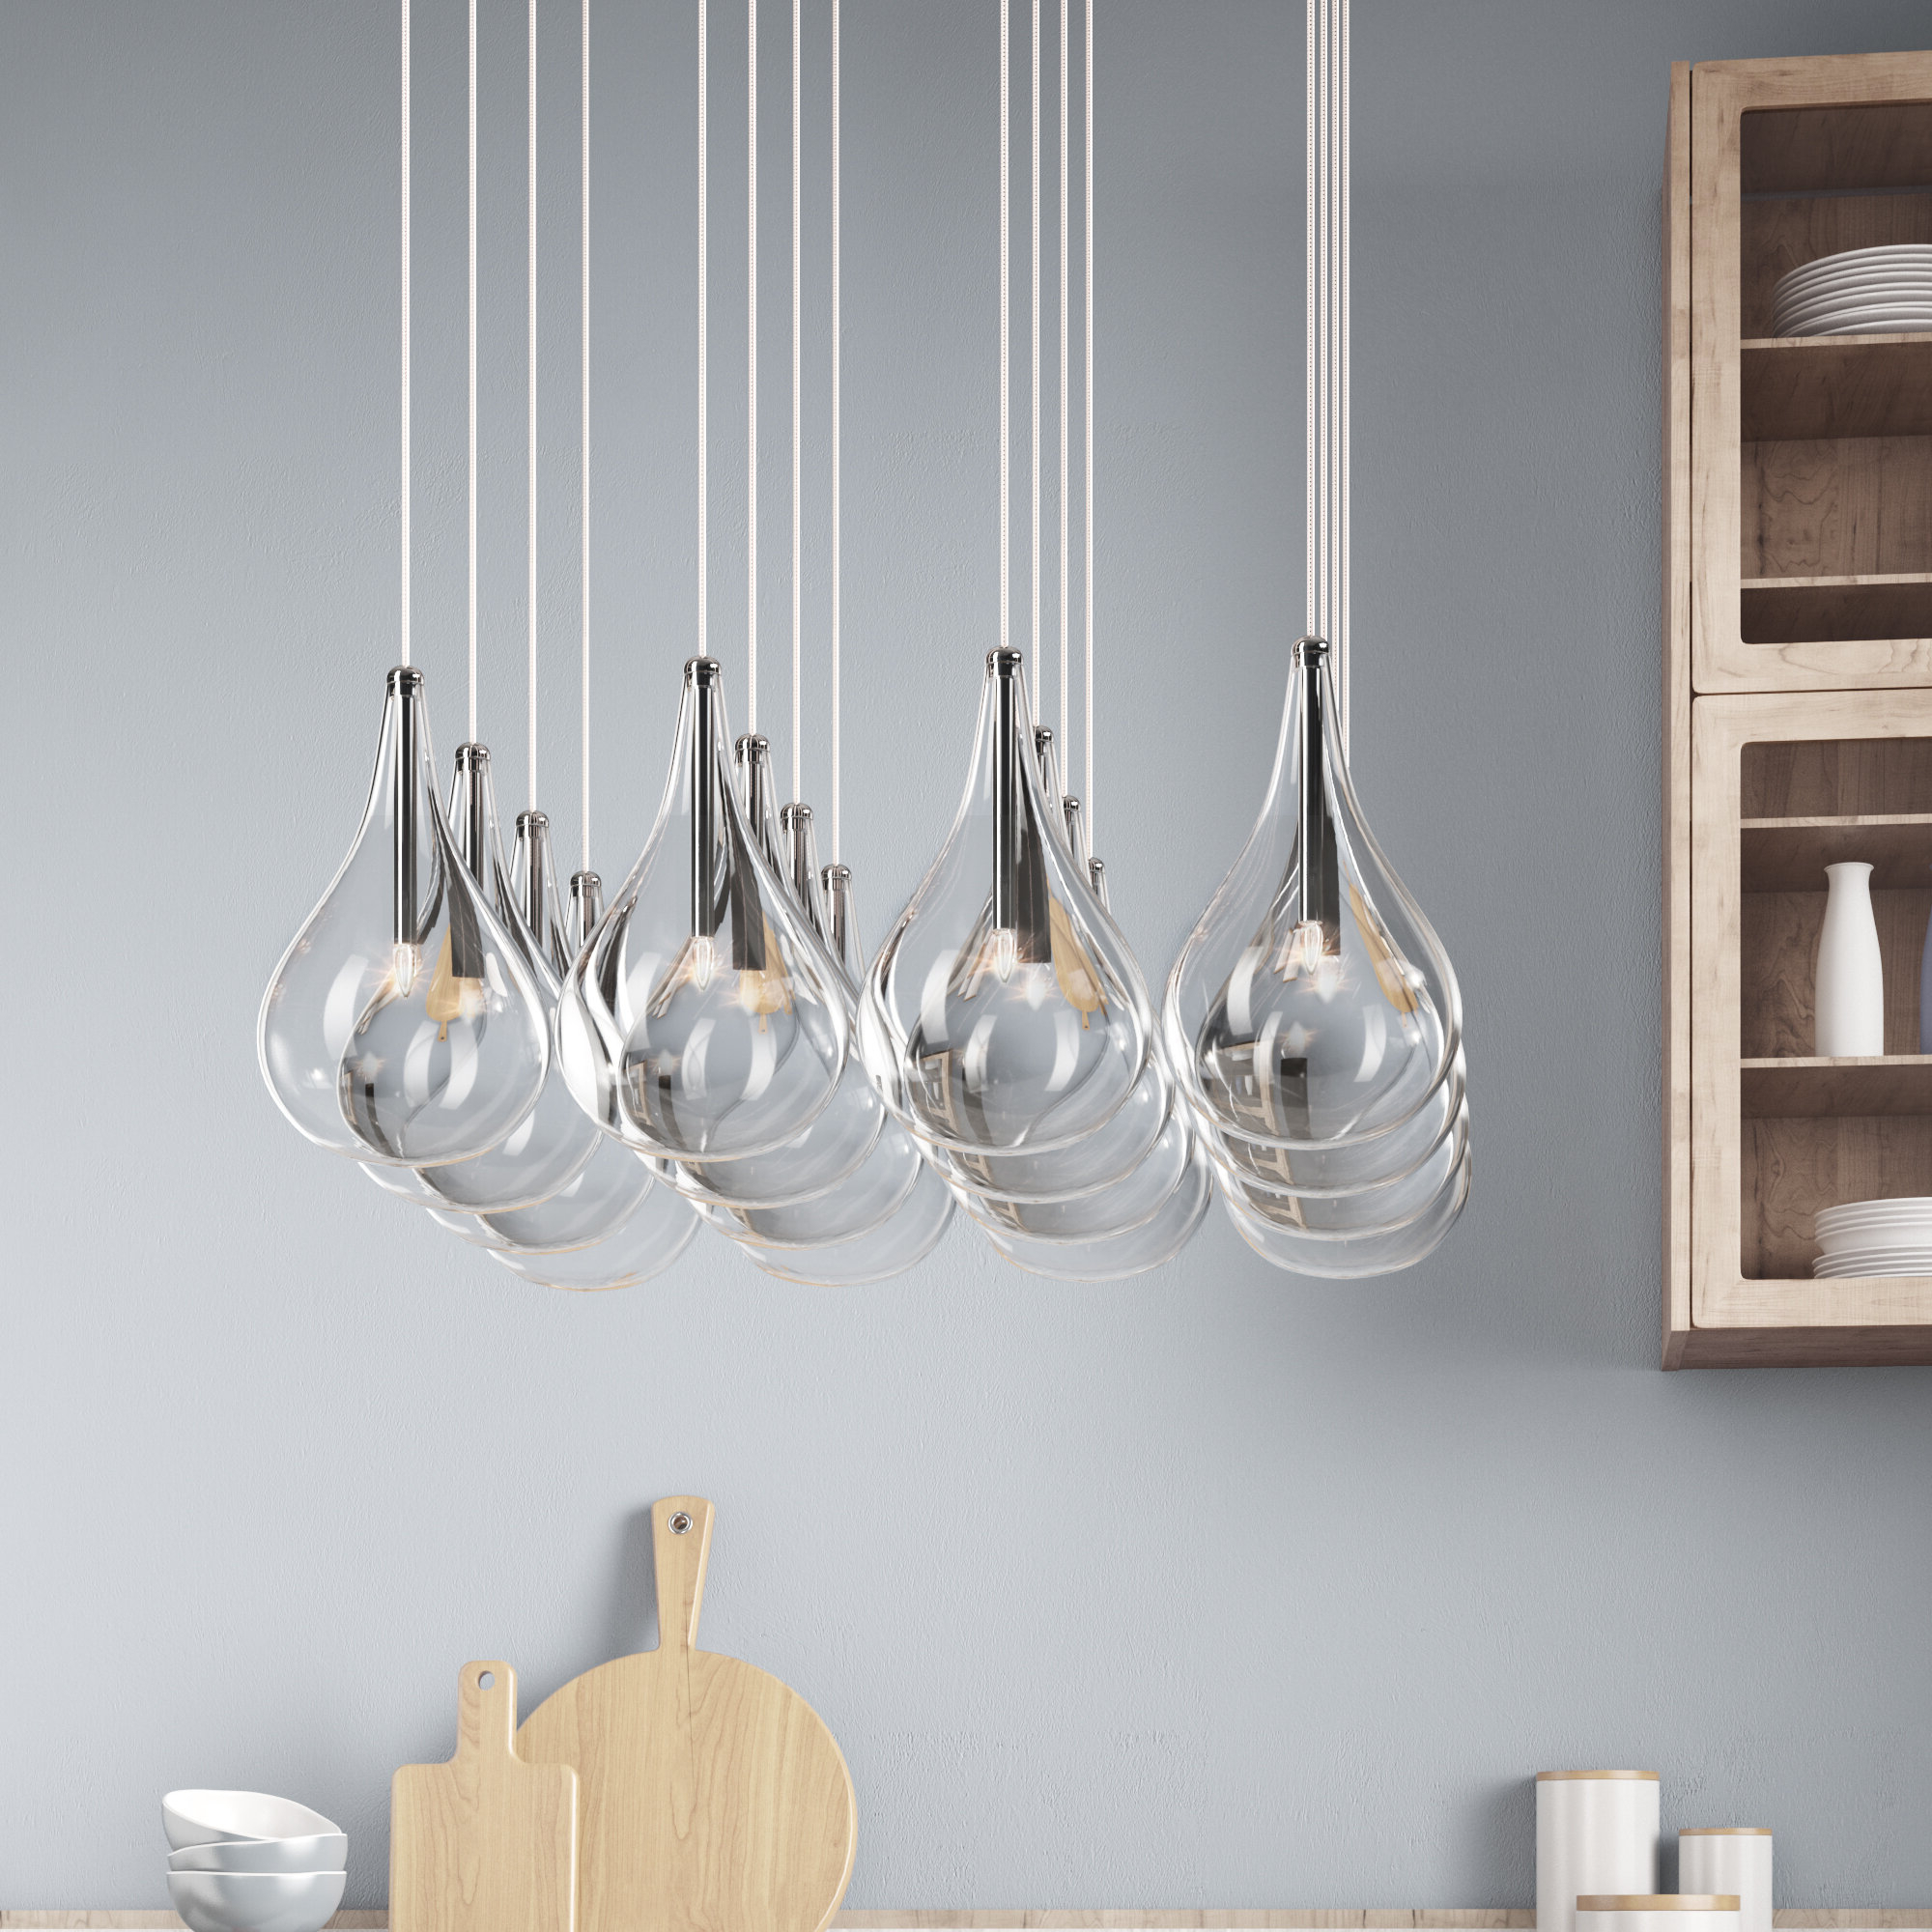 2020 Neal 5 Light Kitchen Island Teardrop Pendants In Neal 16 Light Kitchen Island Pendant (View 1 of 20)